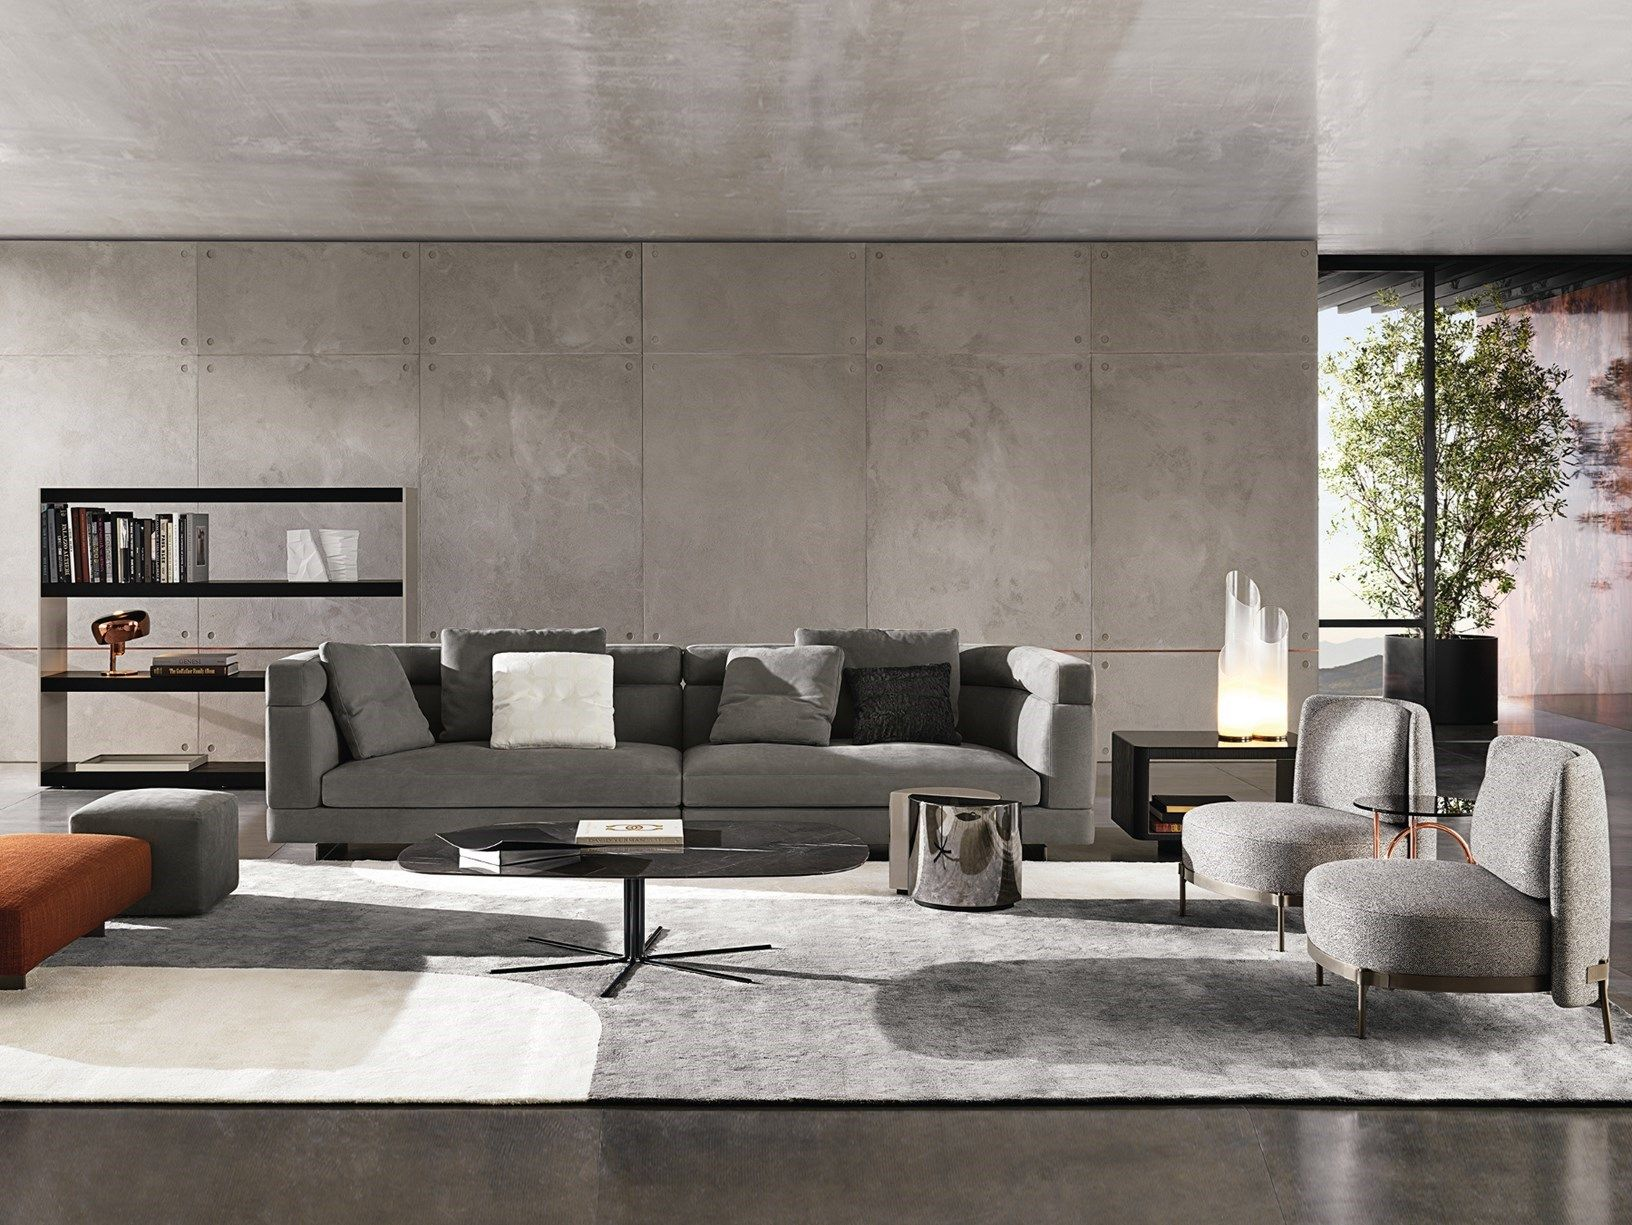 Design Bank Minotti.Minotti 2018 Collection On Show At Imm